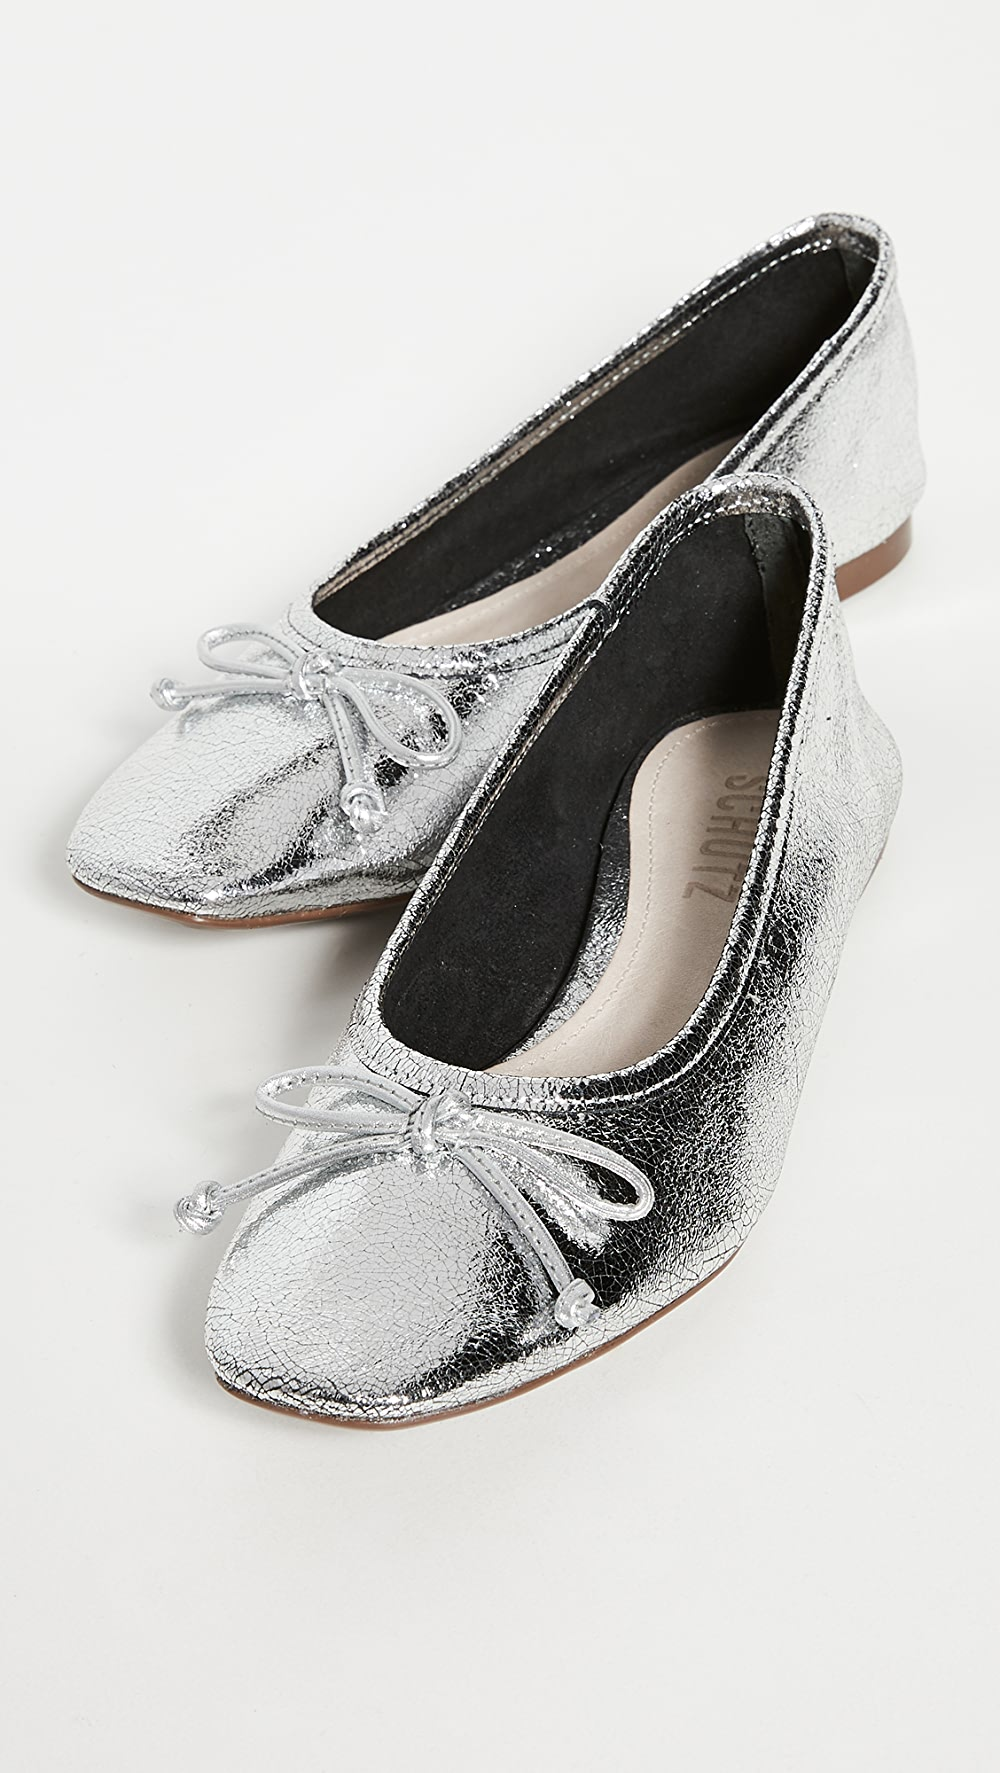 Humor Schutz - Arissa Flats To Produce An Effect Toward Clear Vision